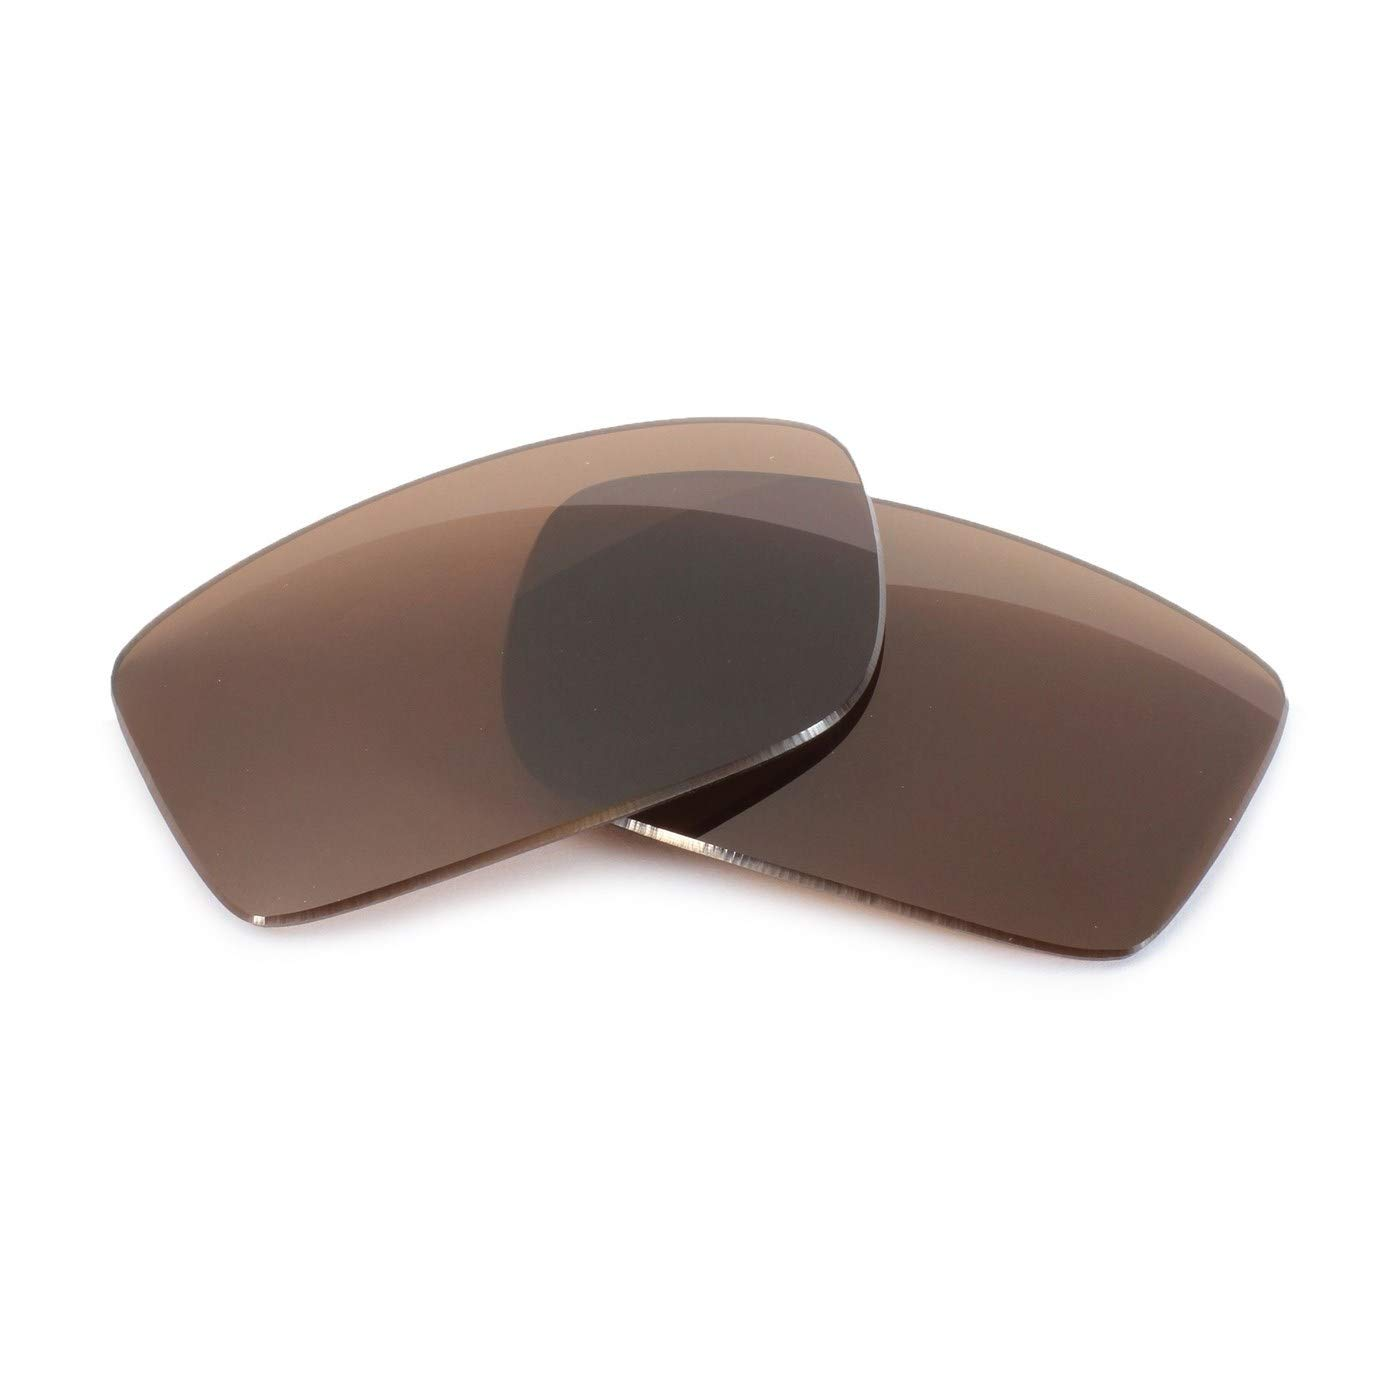 Fuse Lenses Polarized Replacement Lenses for Guess GU6700 53mm